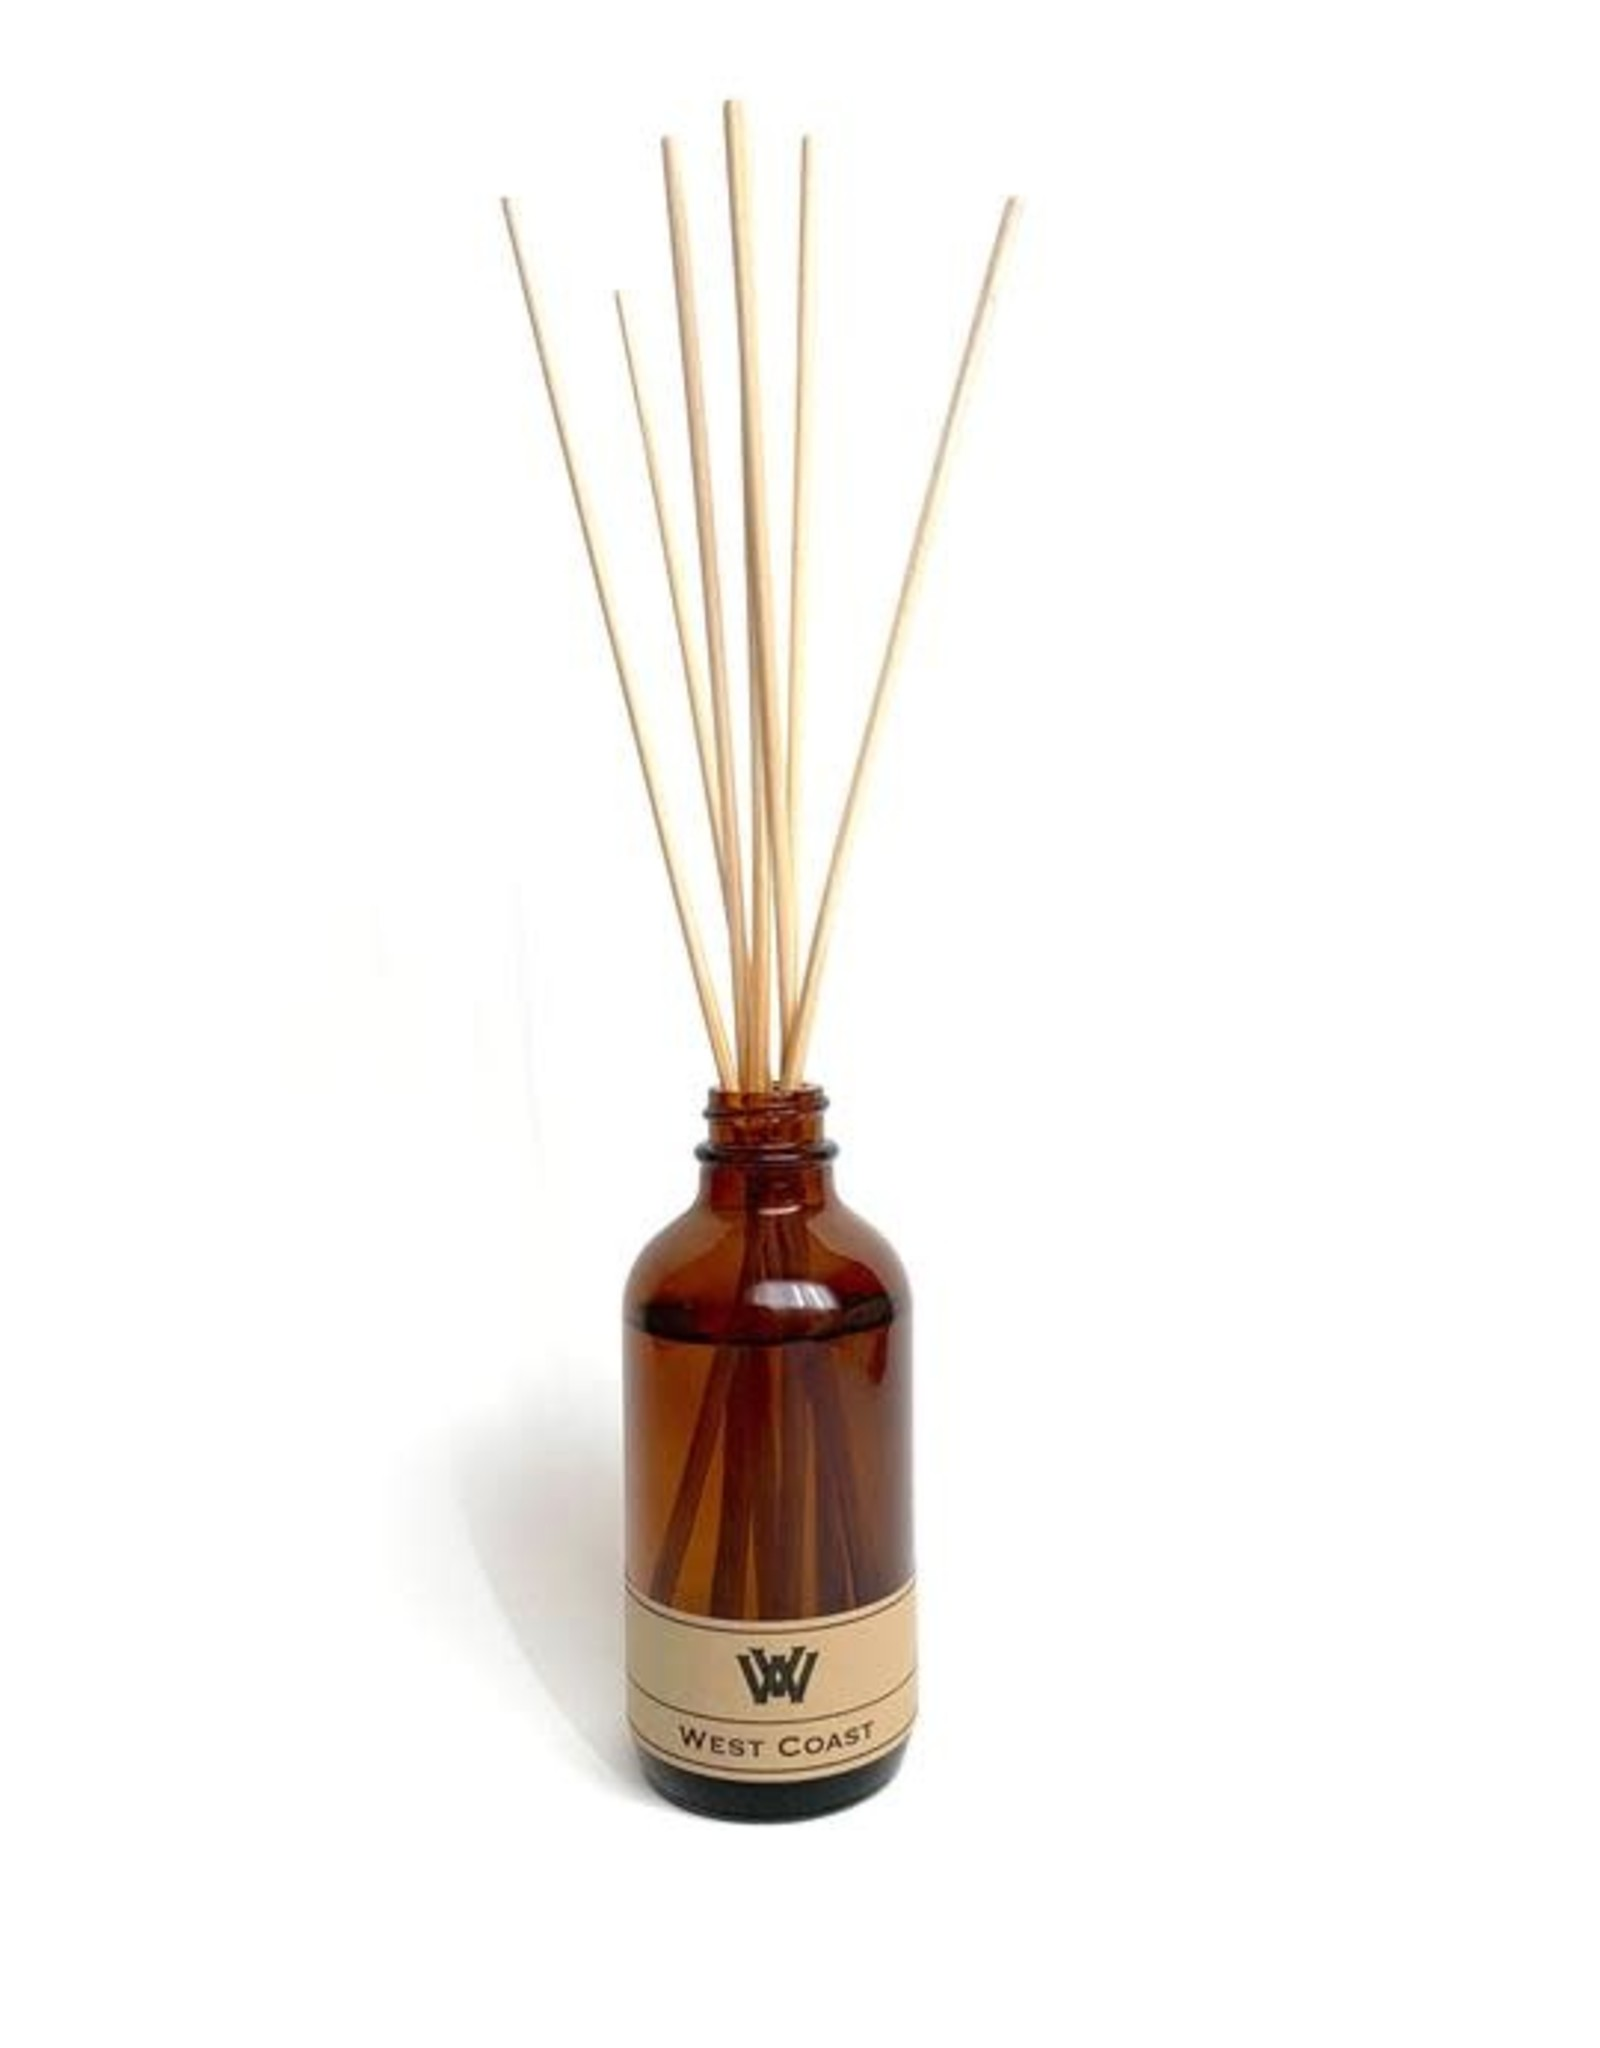 W.V Candle Co W.V Candle Co. Diffuser West Coast